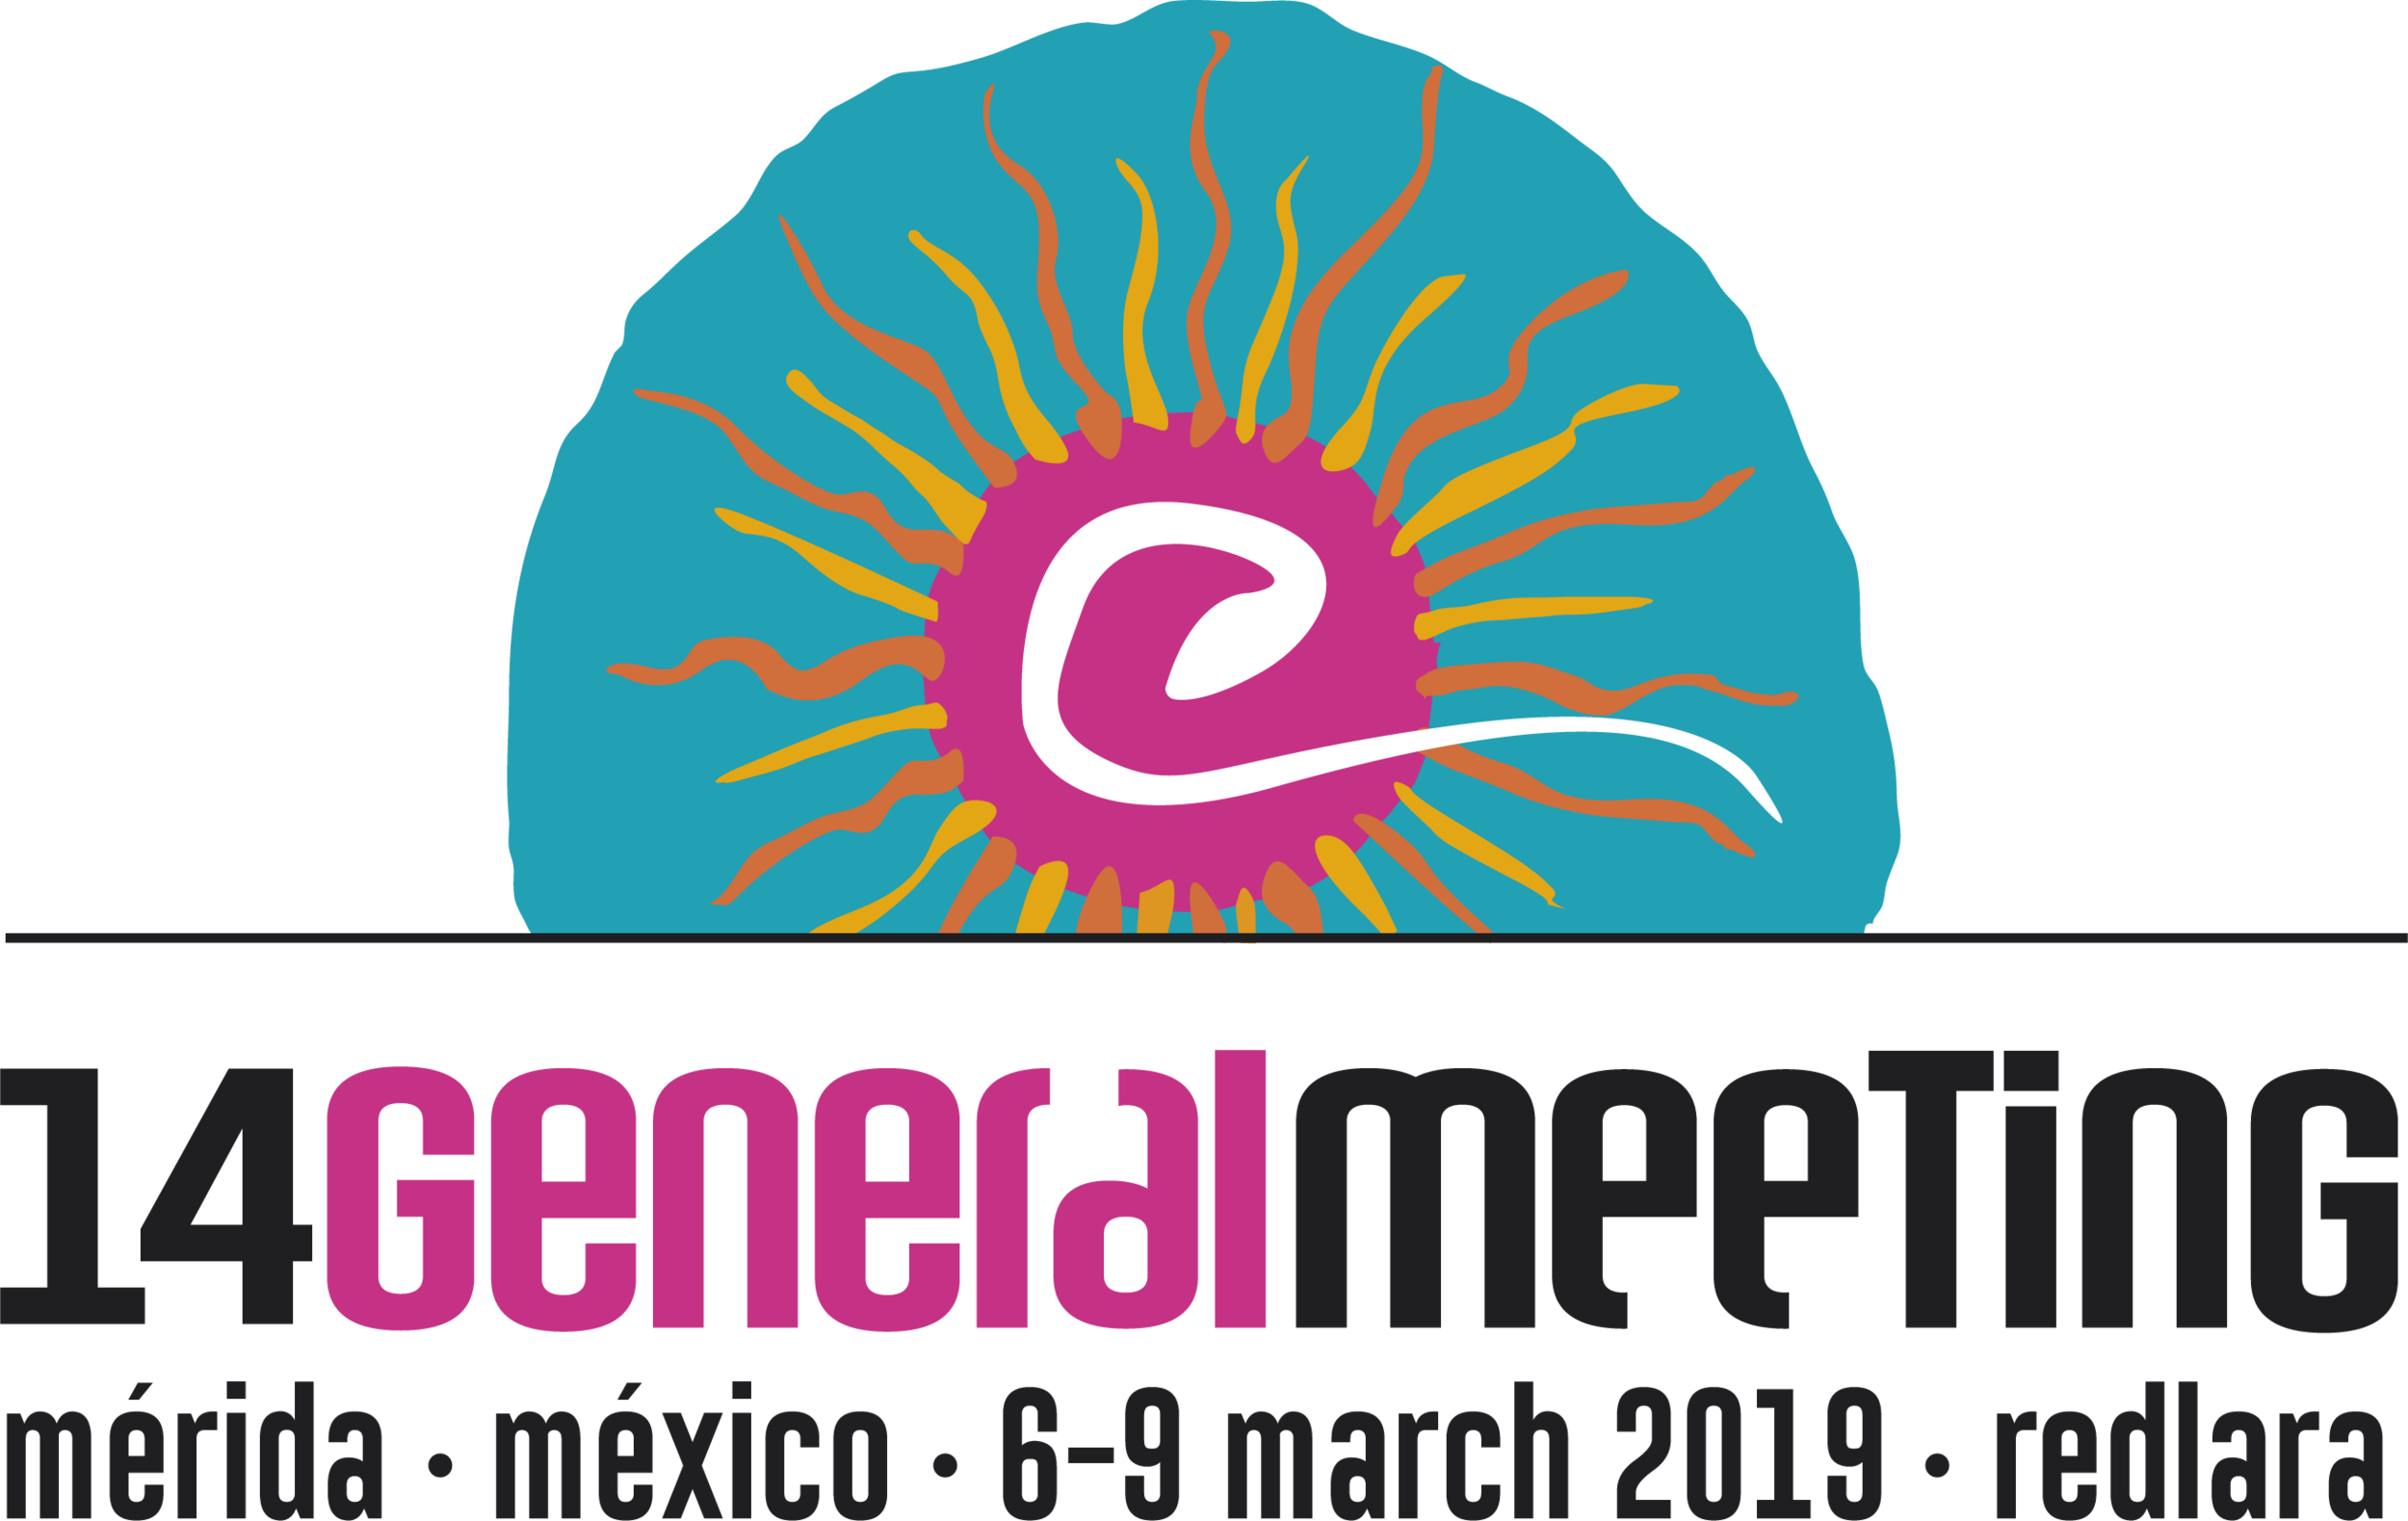 Español and Português, RedLara Conference - Merida Mexico from March 7-9, 2019 - Please stop by and say hello to the Mellowood Medical Team at the RedLara Conference, in Merida, Mexico from March 7-9, 2019Booth 11